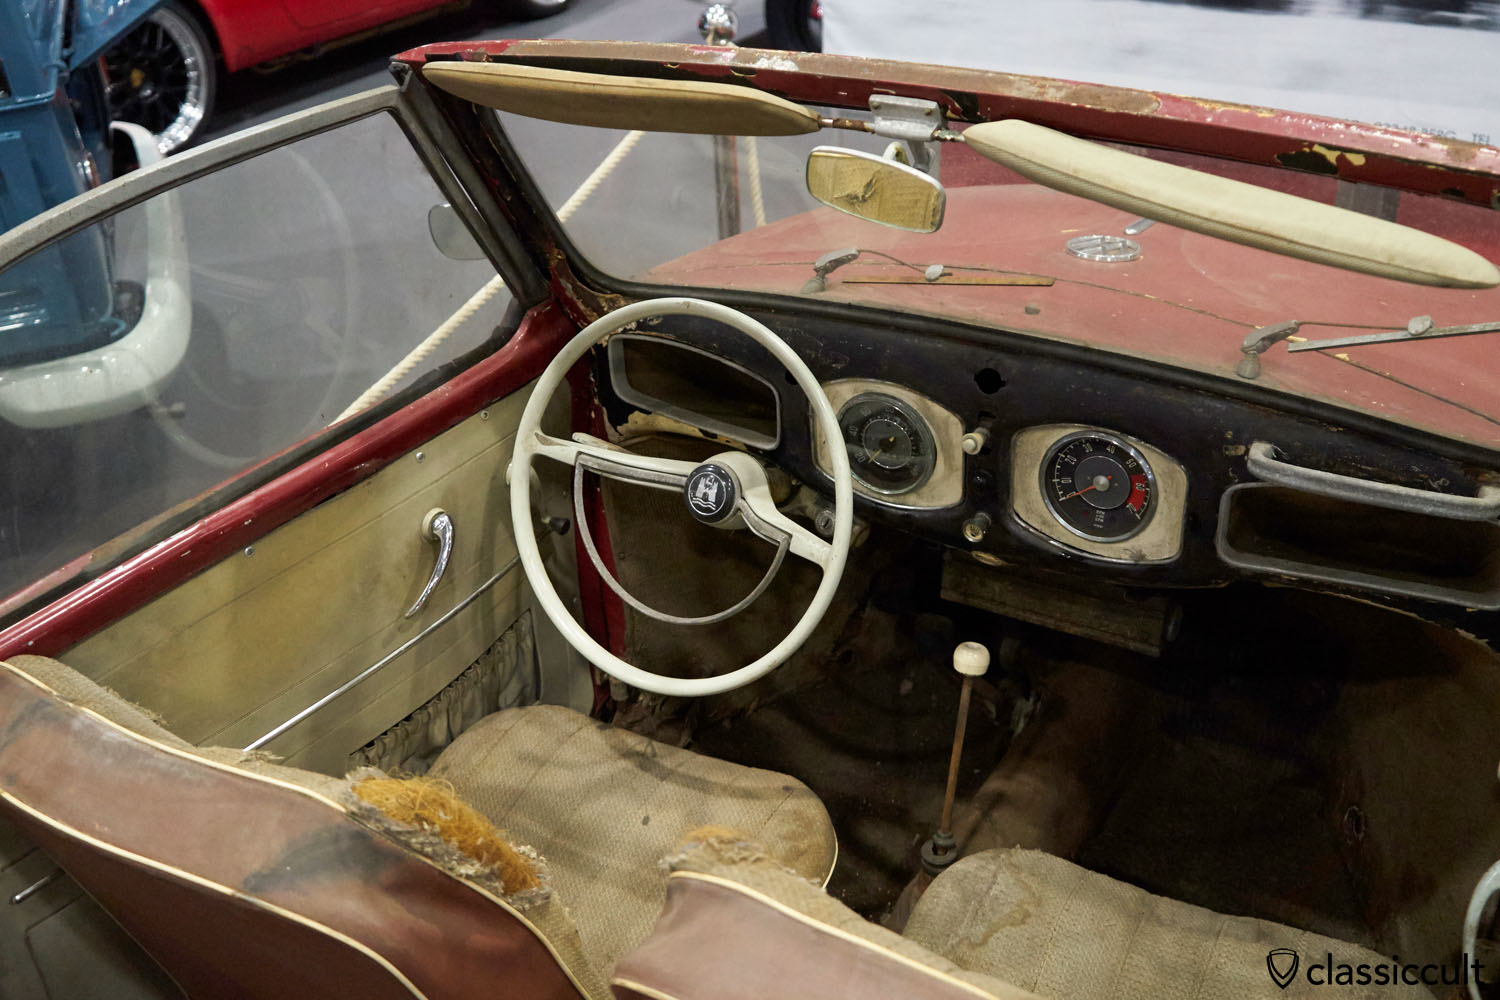 1949 VW Hebmüller dash view, unrestored and rusty